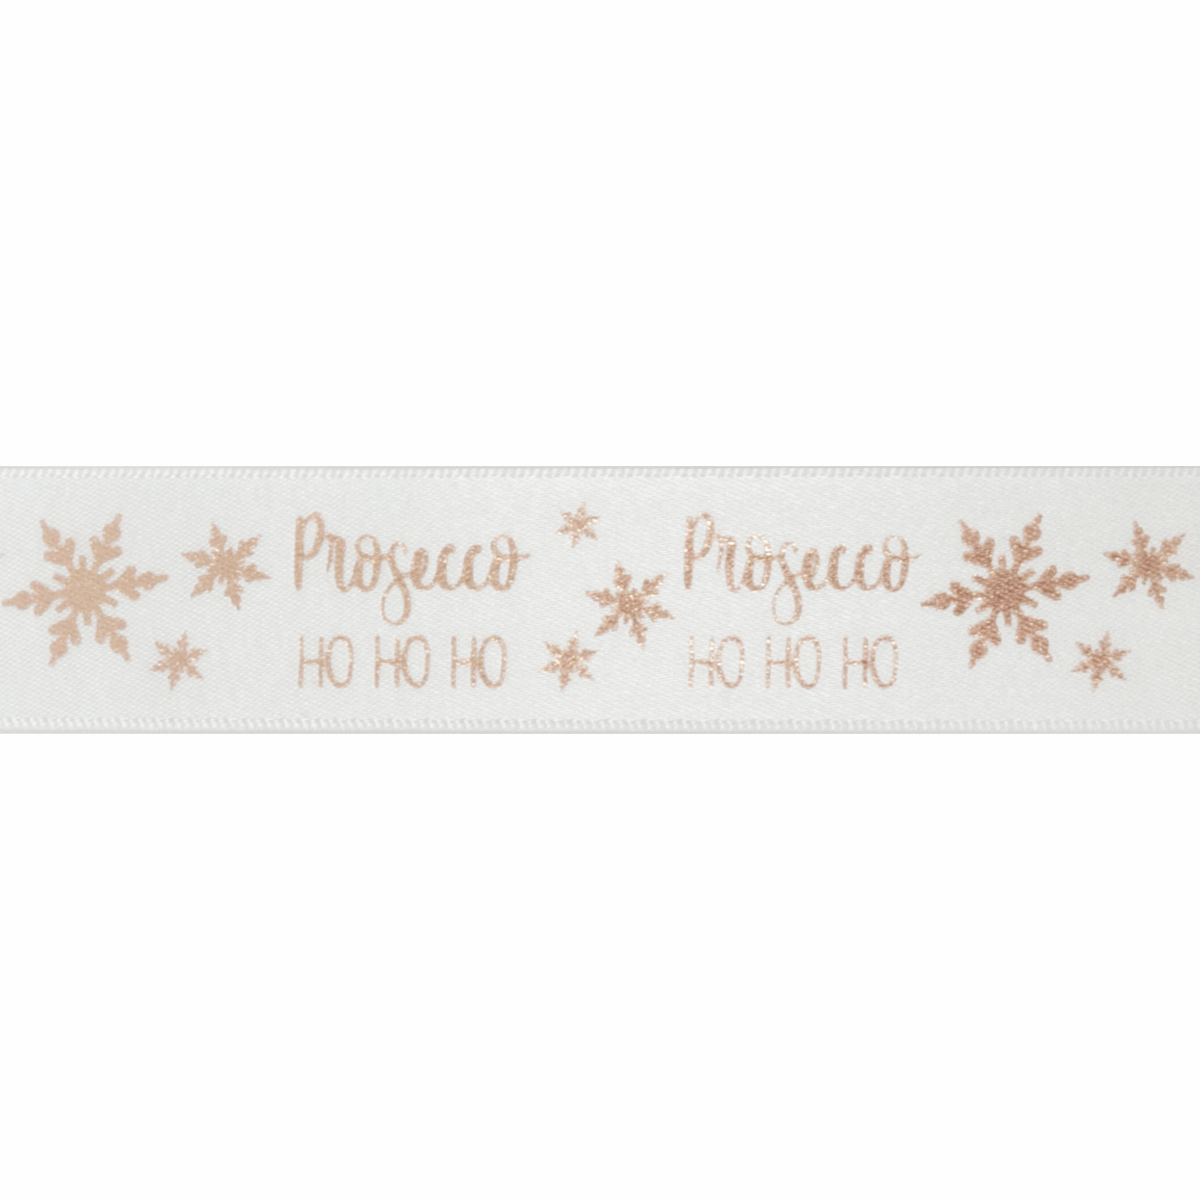 Picture of Exclusive to Groves: Metallic Prosecco Ho Ho Ho: 20m x 25mm: White/Rose Gold